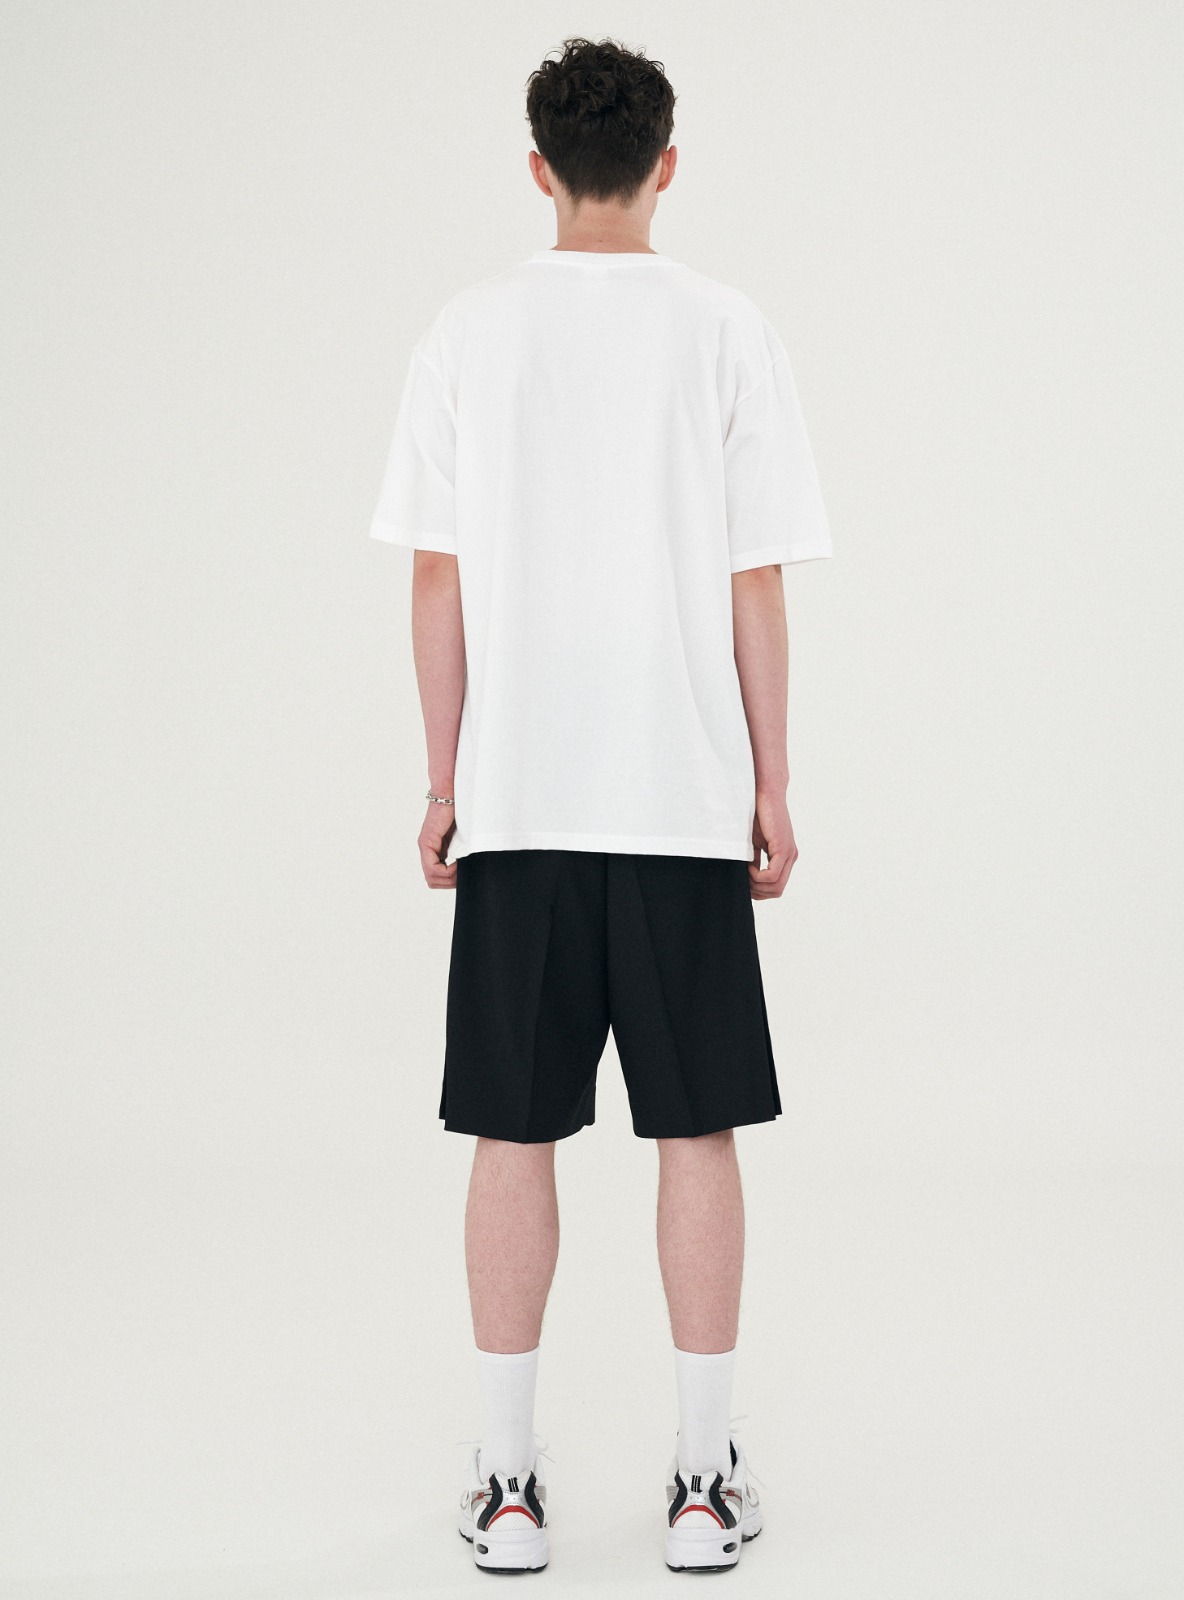 ADDITUDE LAYOUT TEE WHITE